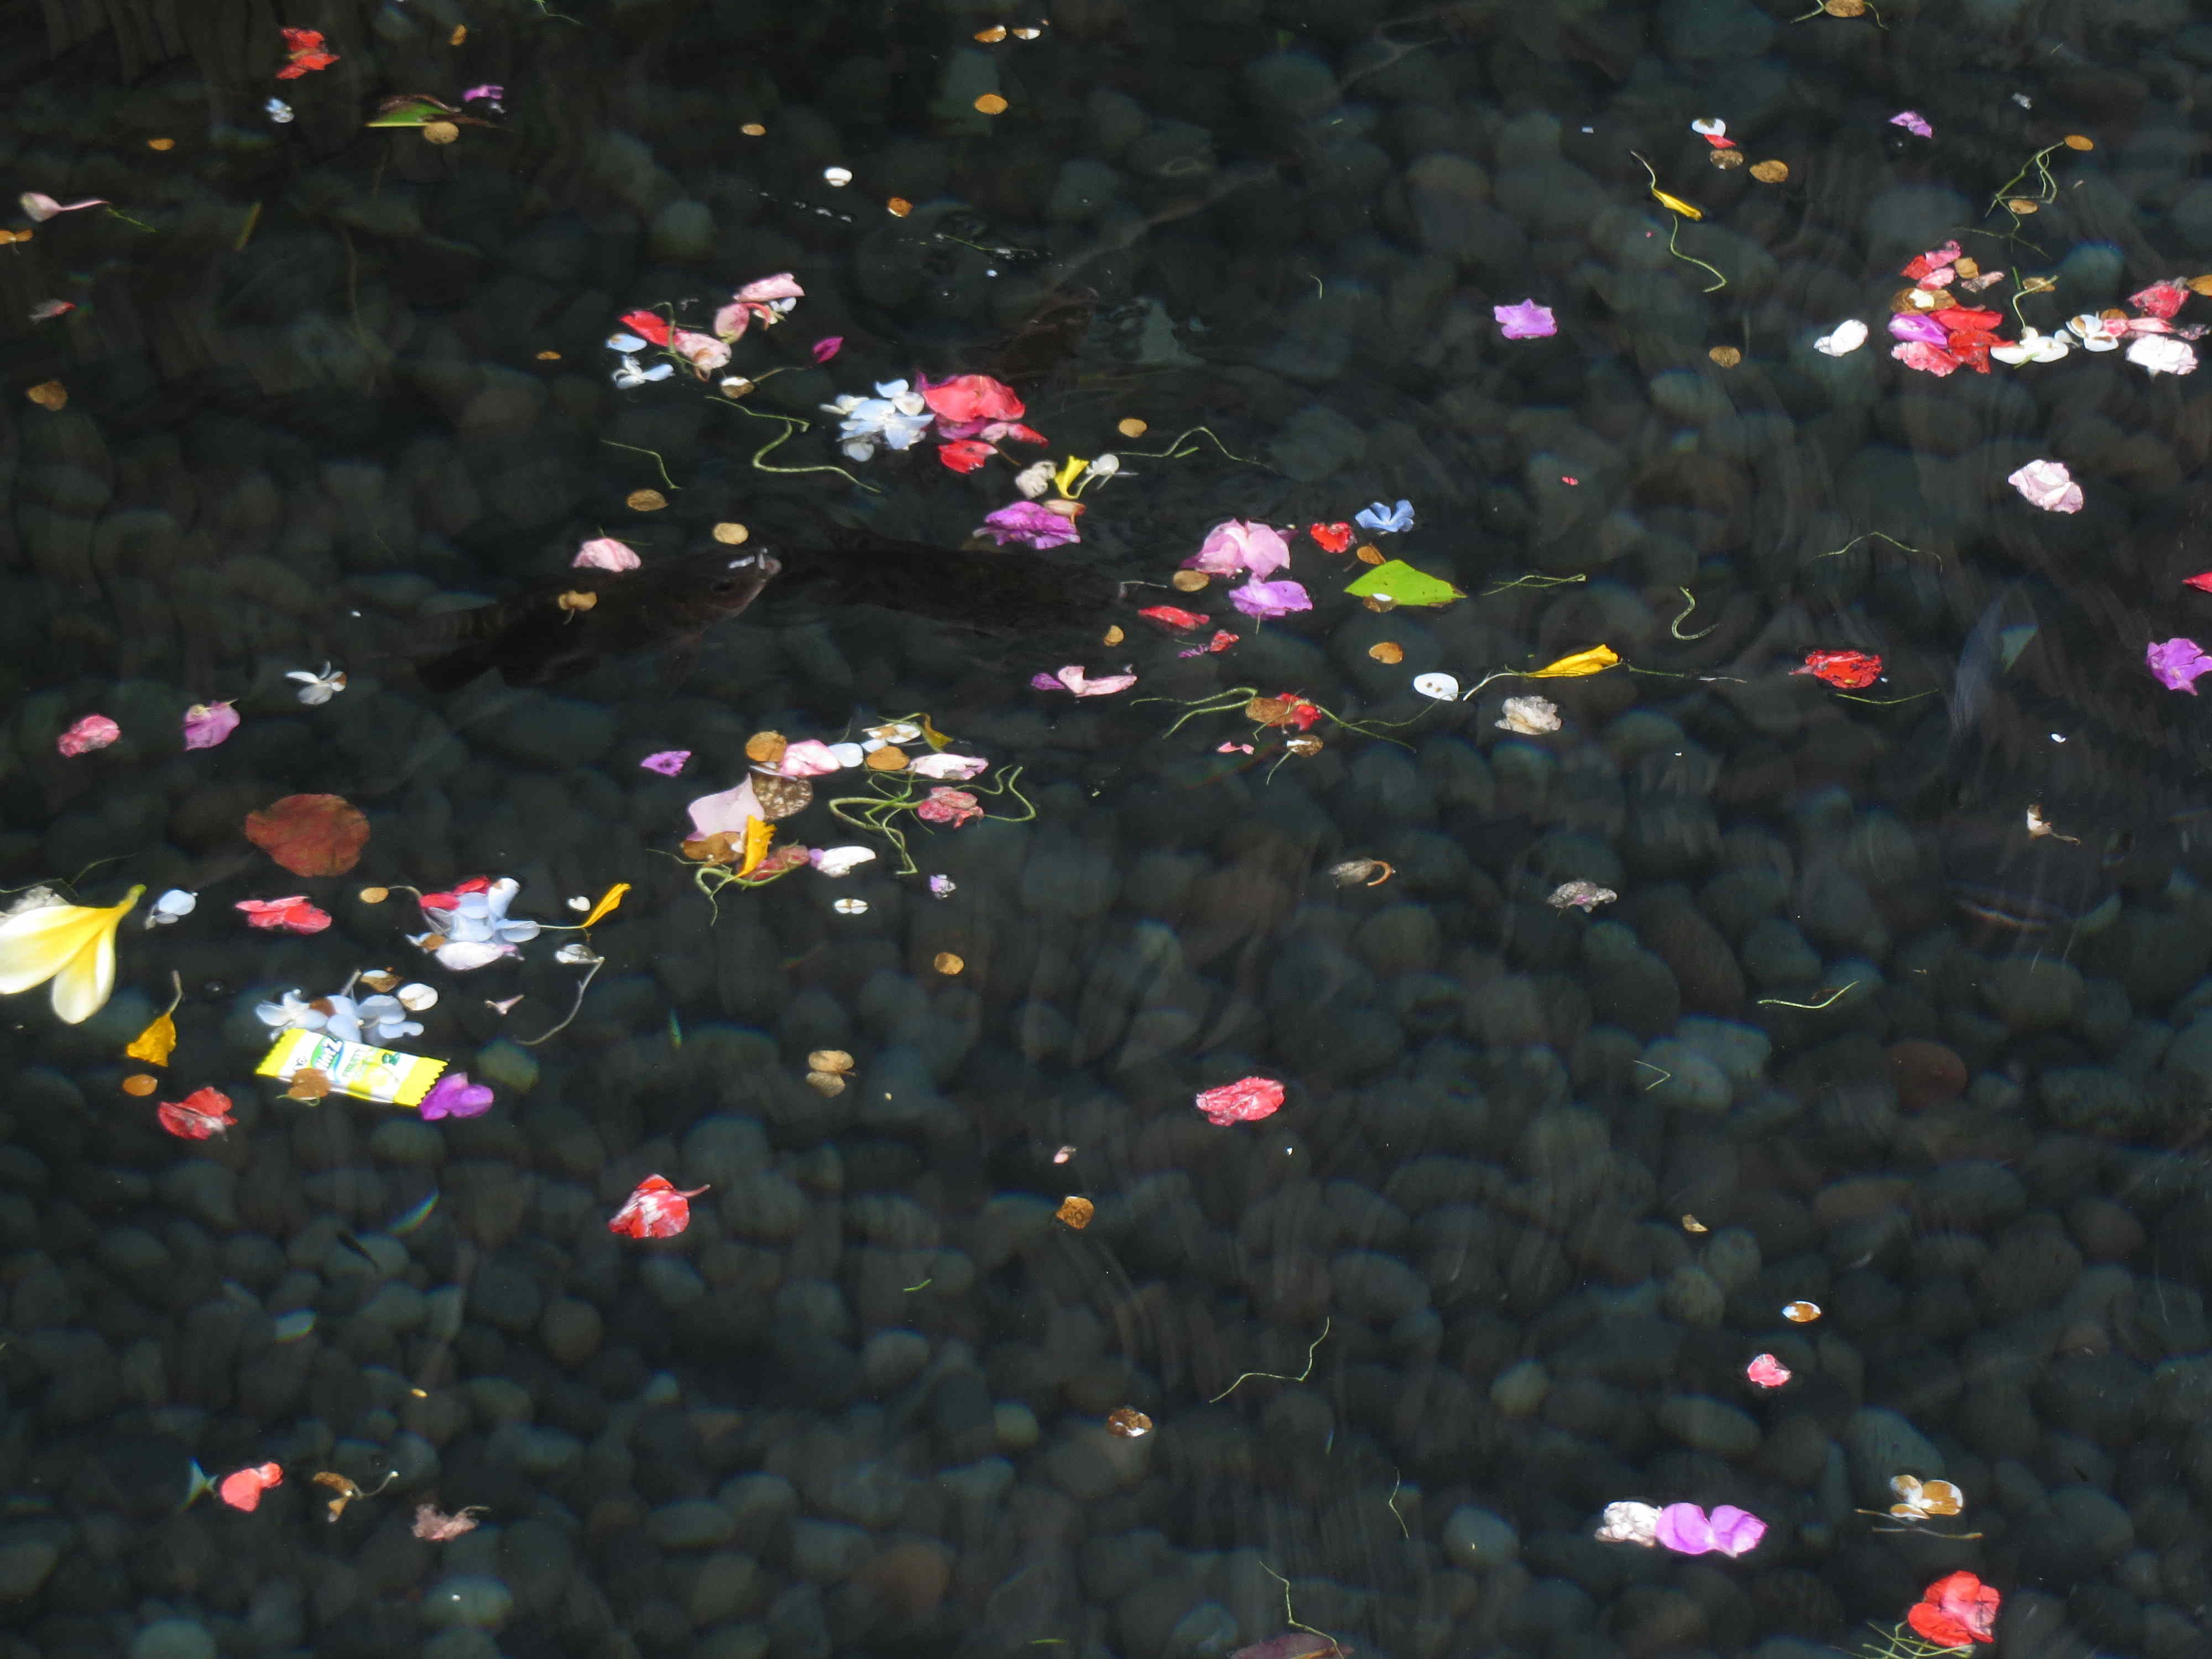 Flowers in the water